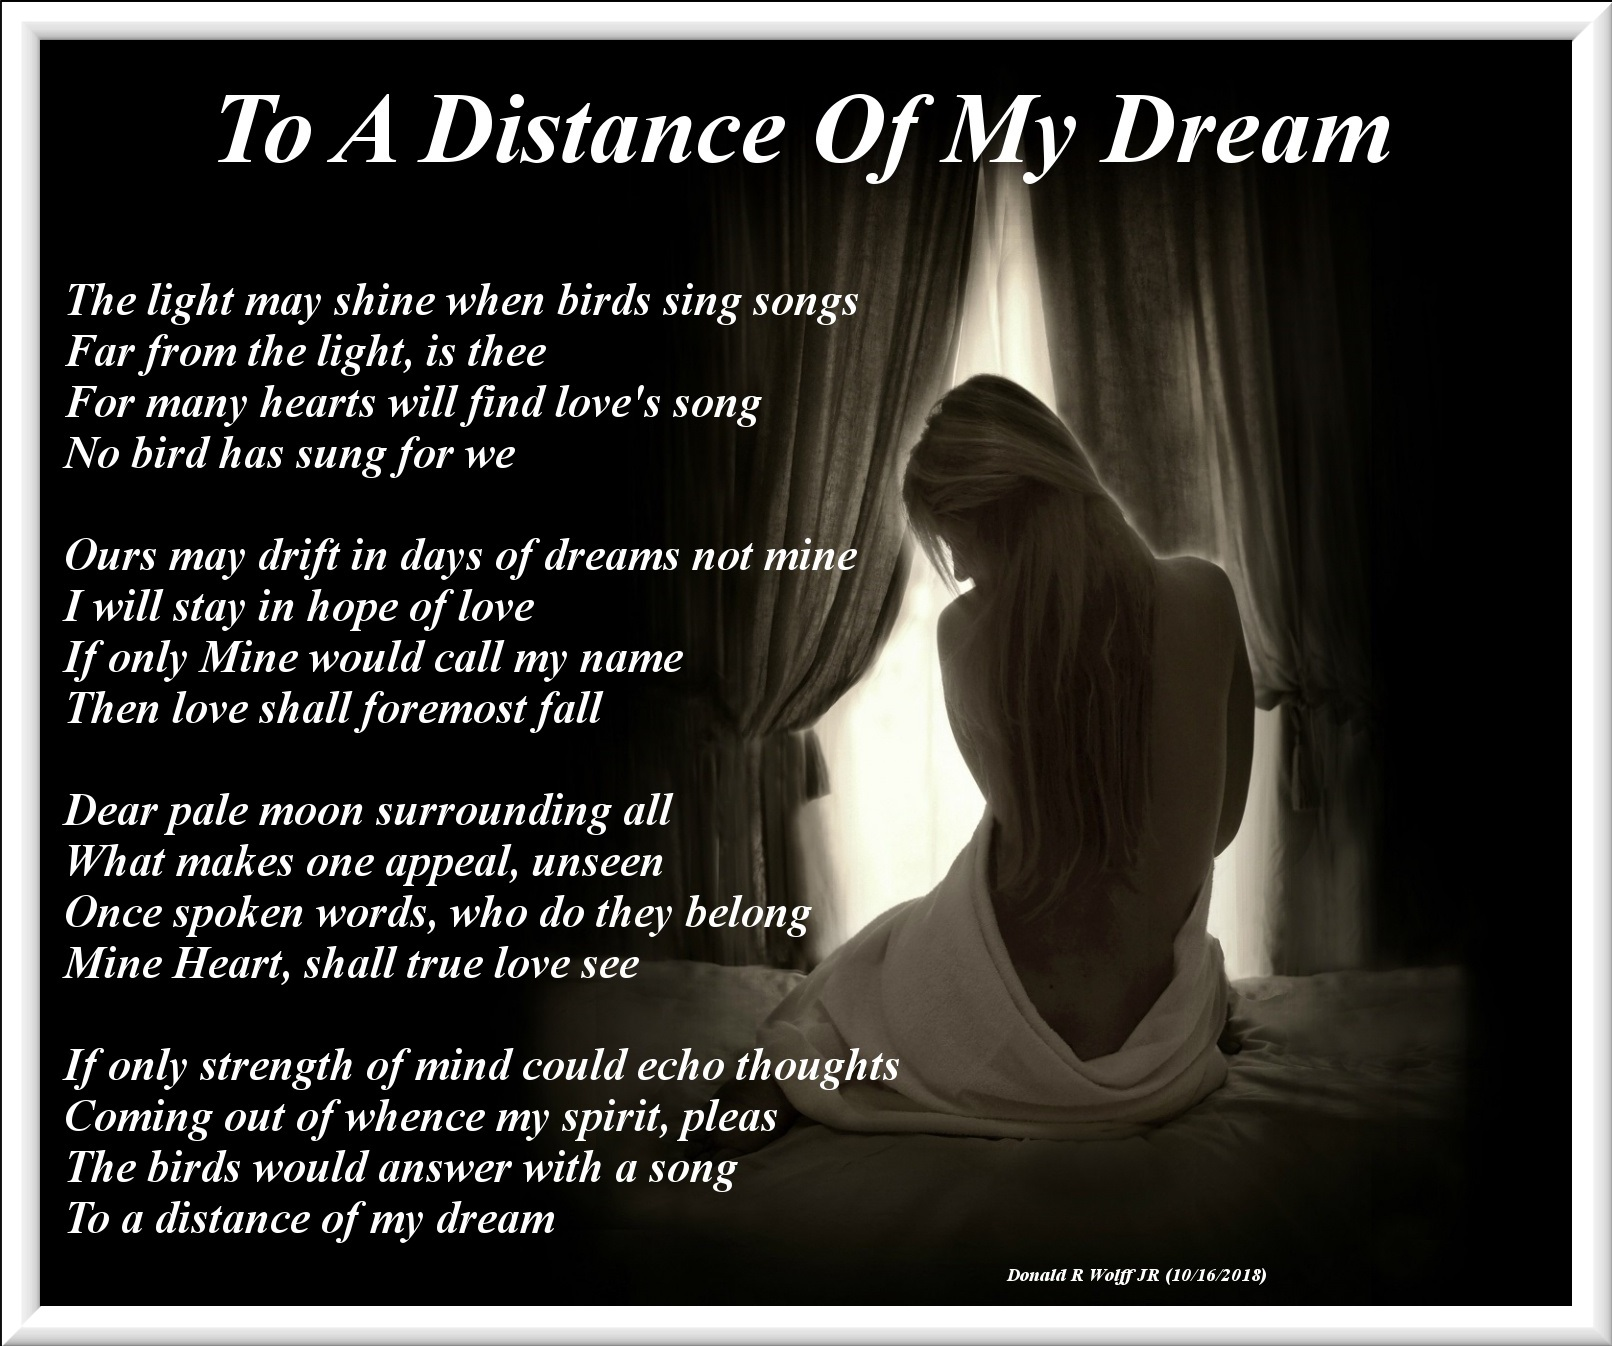 To A Distance Of My Dream